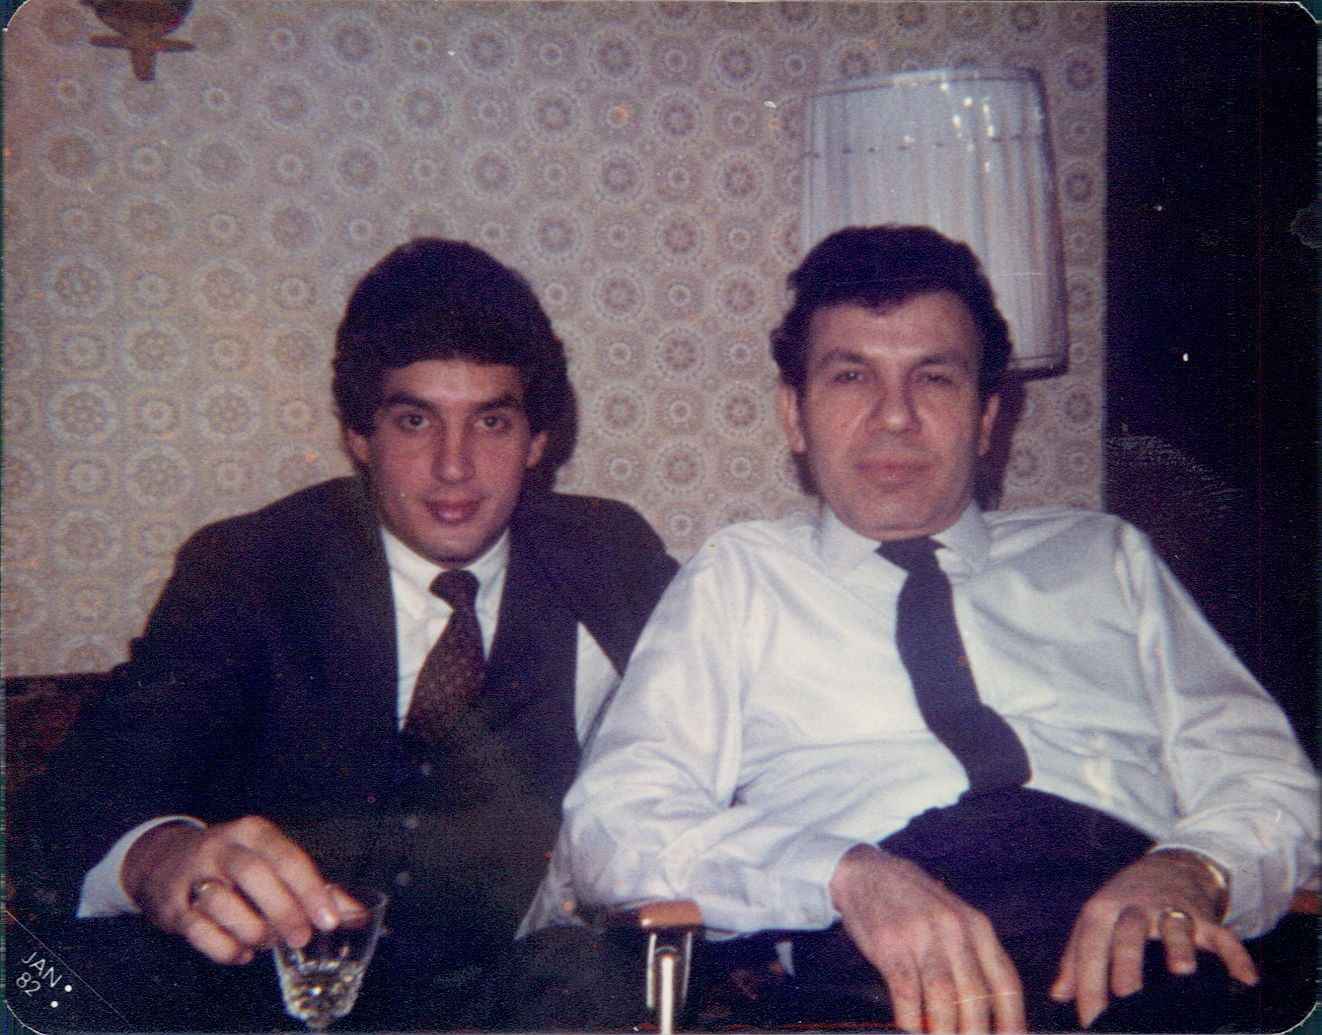 Steve Demetriou with his father in 1982, when Steve was working at Exxon Mobil.